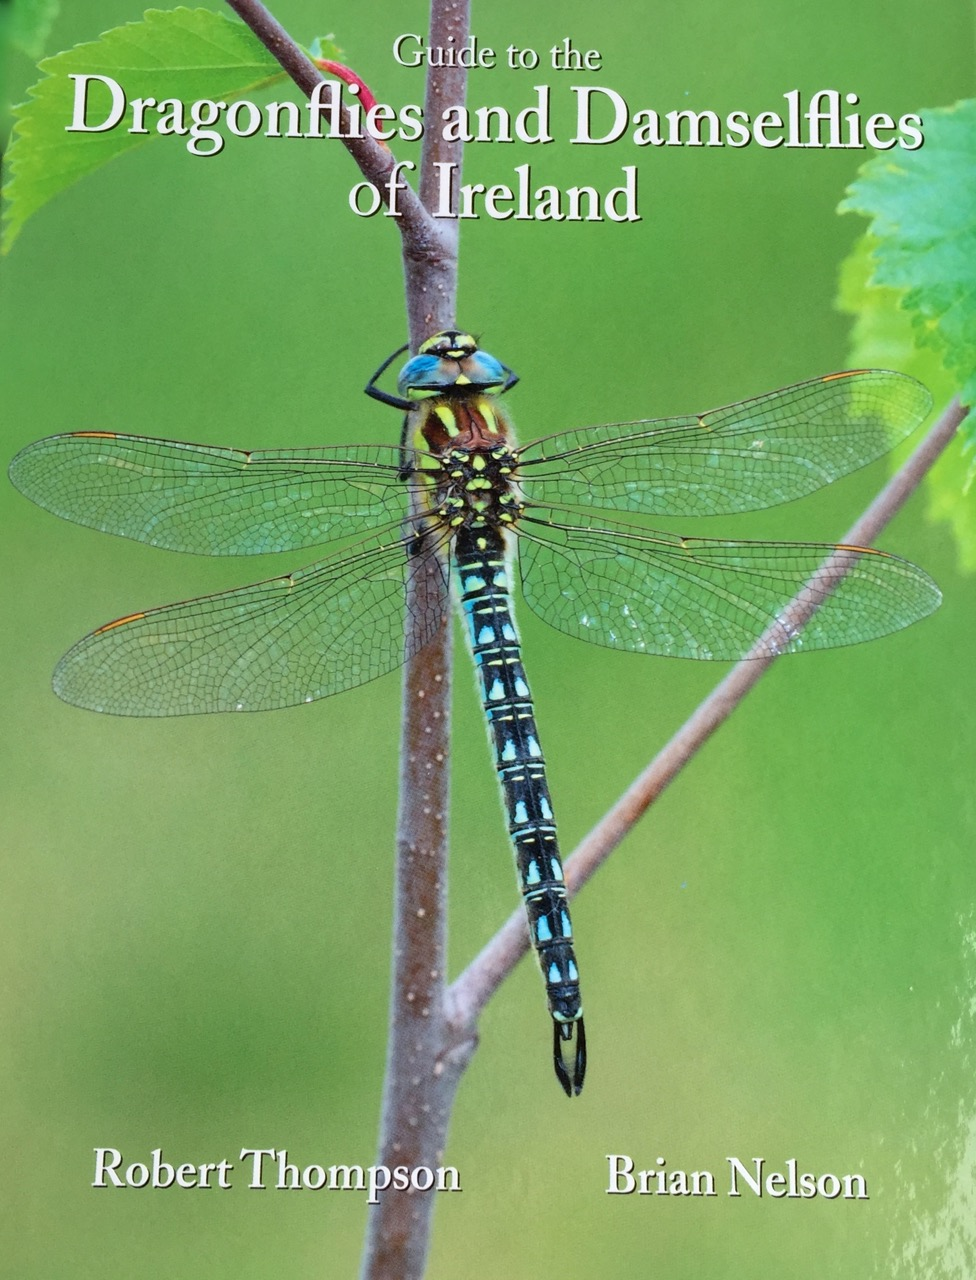 Guide to Dragonflies and Damselflies of Ireland, Robert Thompson, Brian Nelson